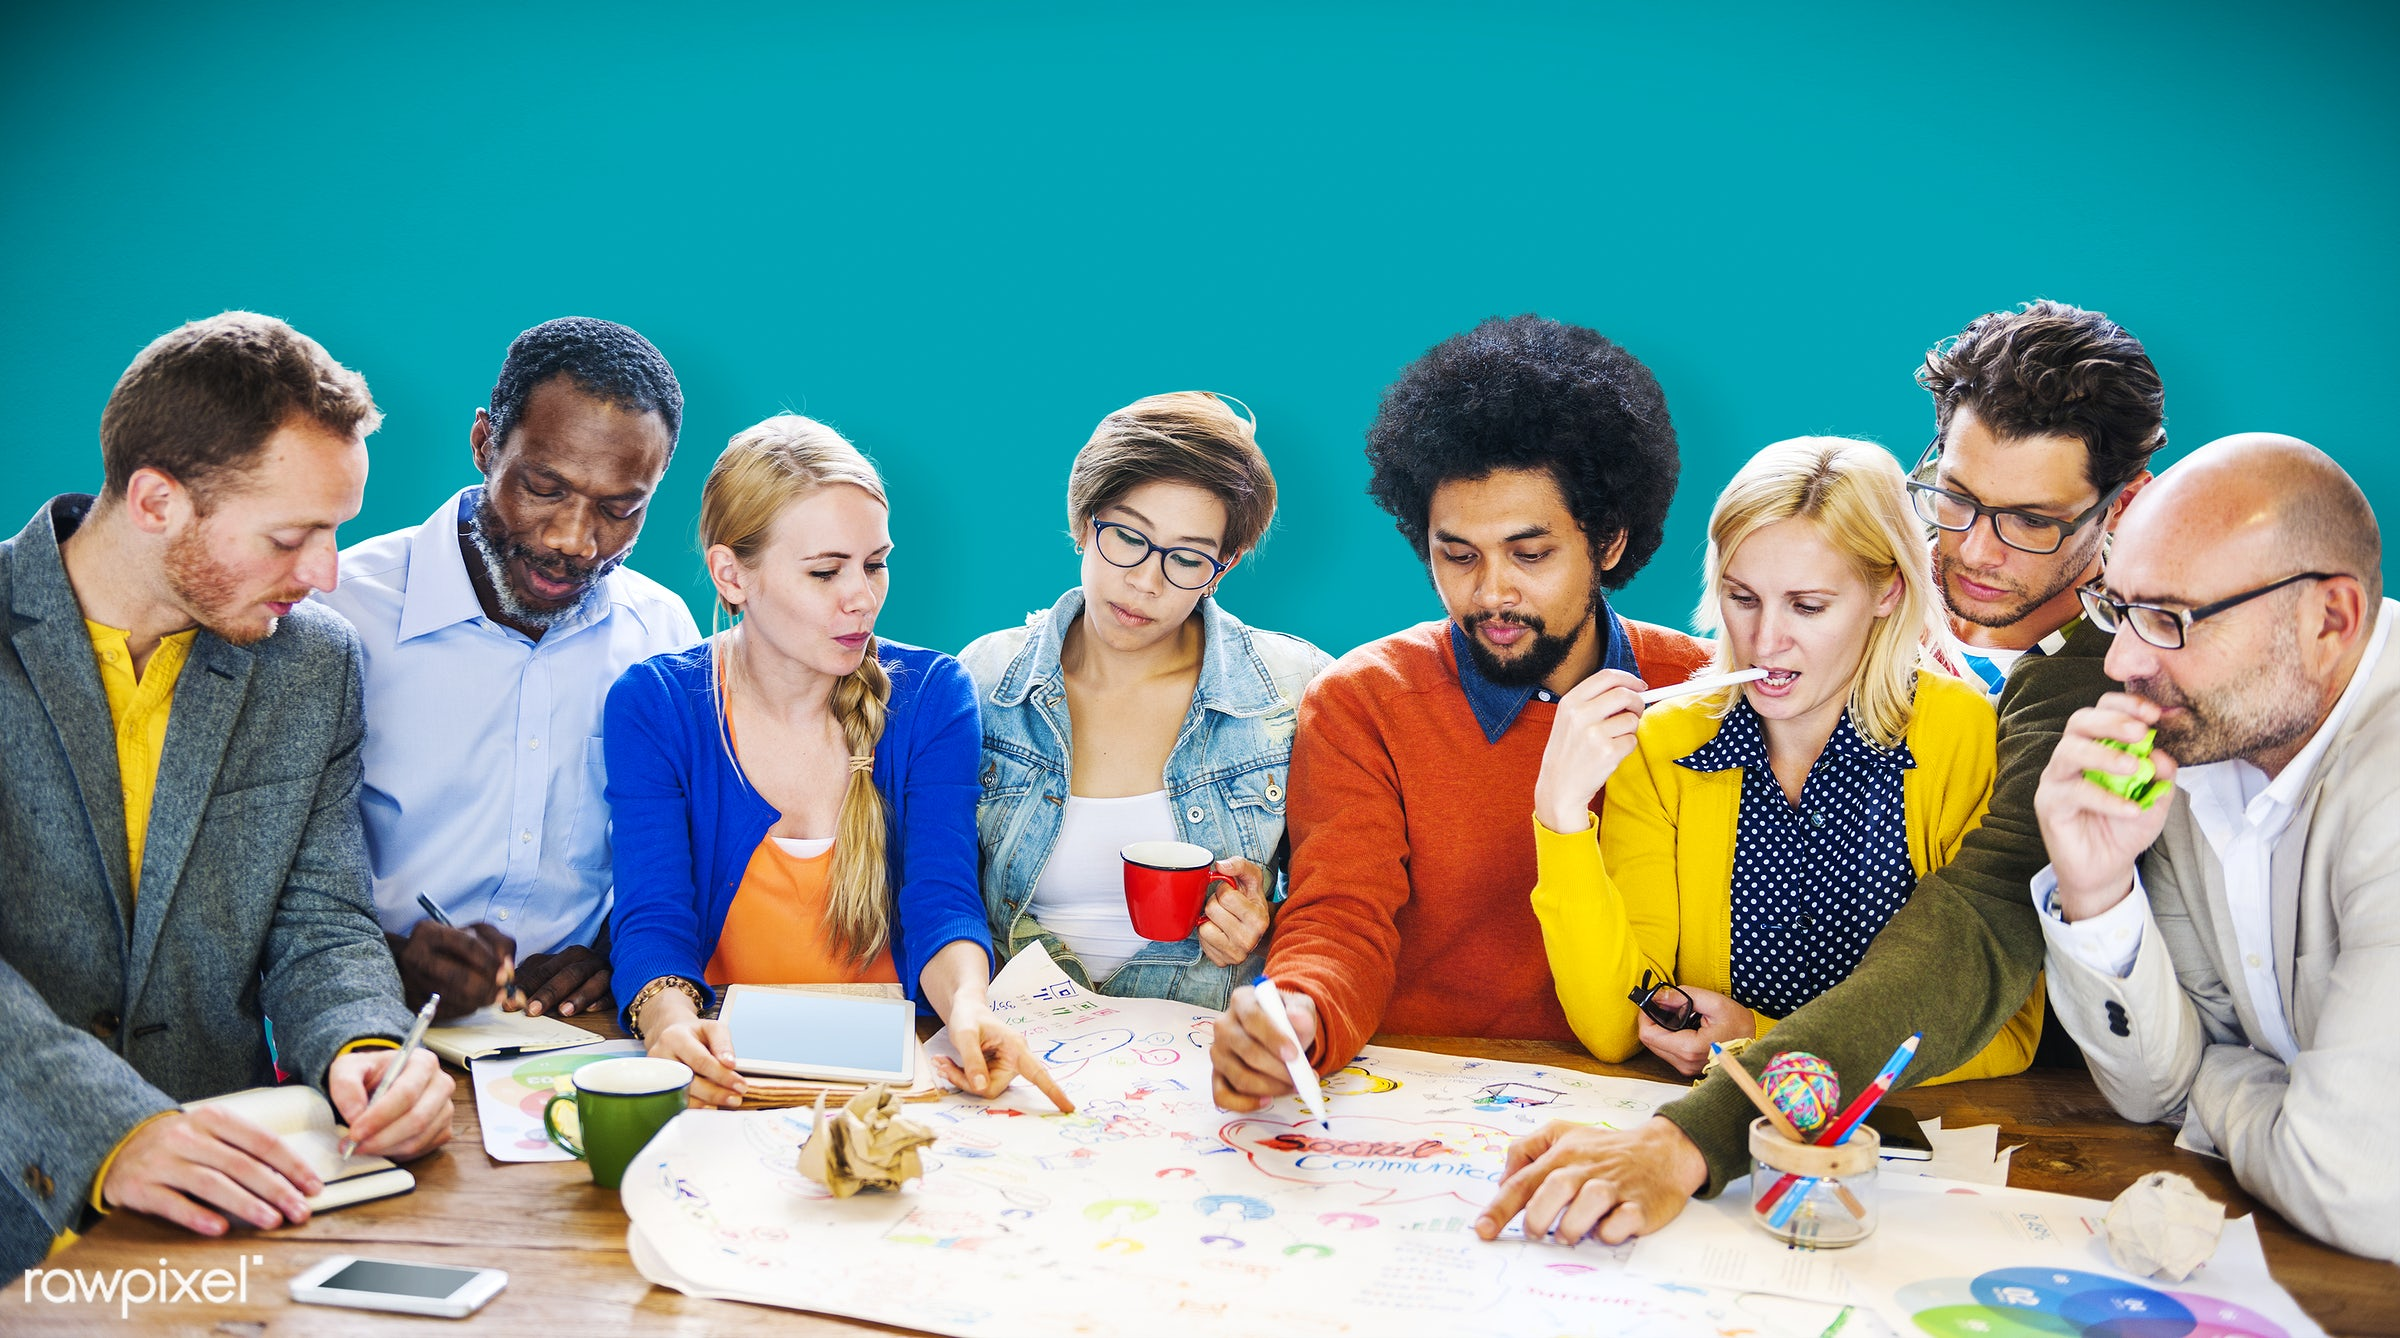 african descent, asian ethnicity, backdrop, background, brainstorming, casual, colourful, communication, community,...